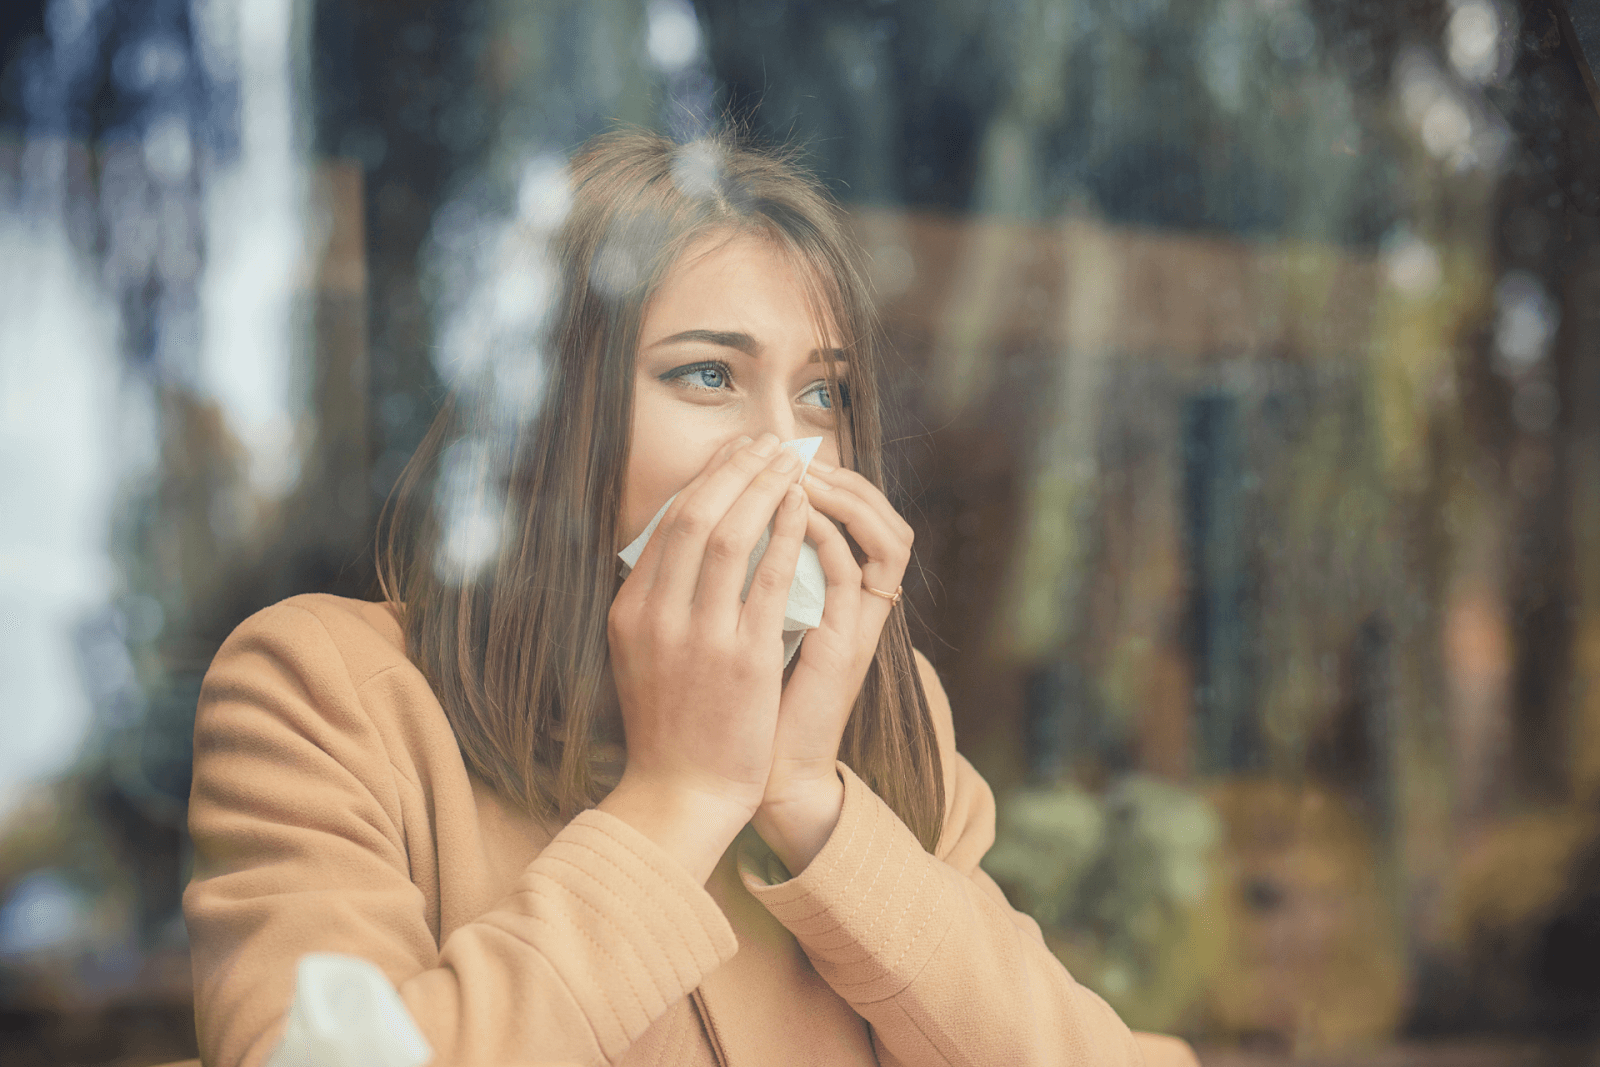 A woman standing in front of her window, sneezing from allergies